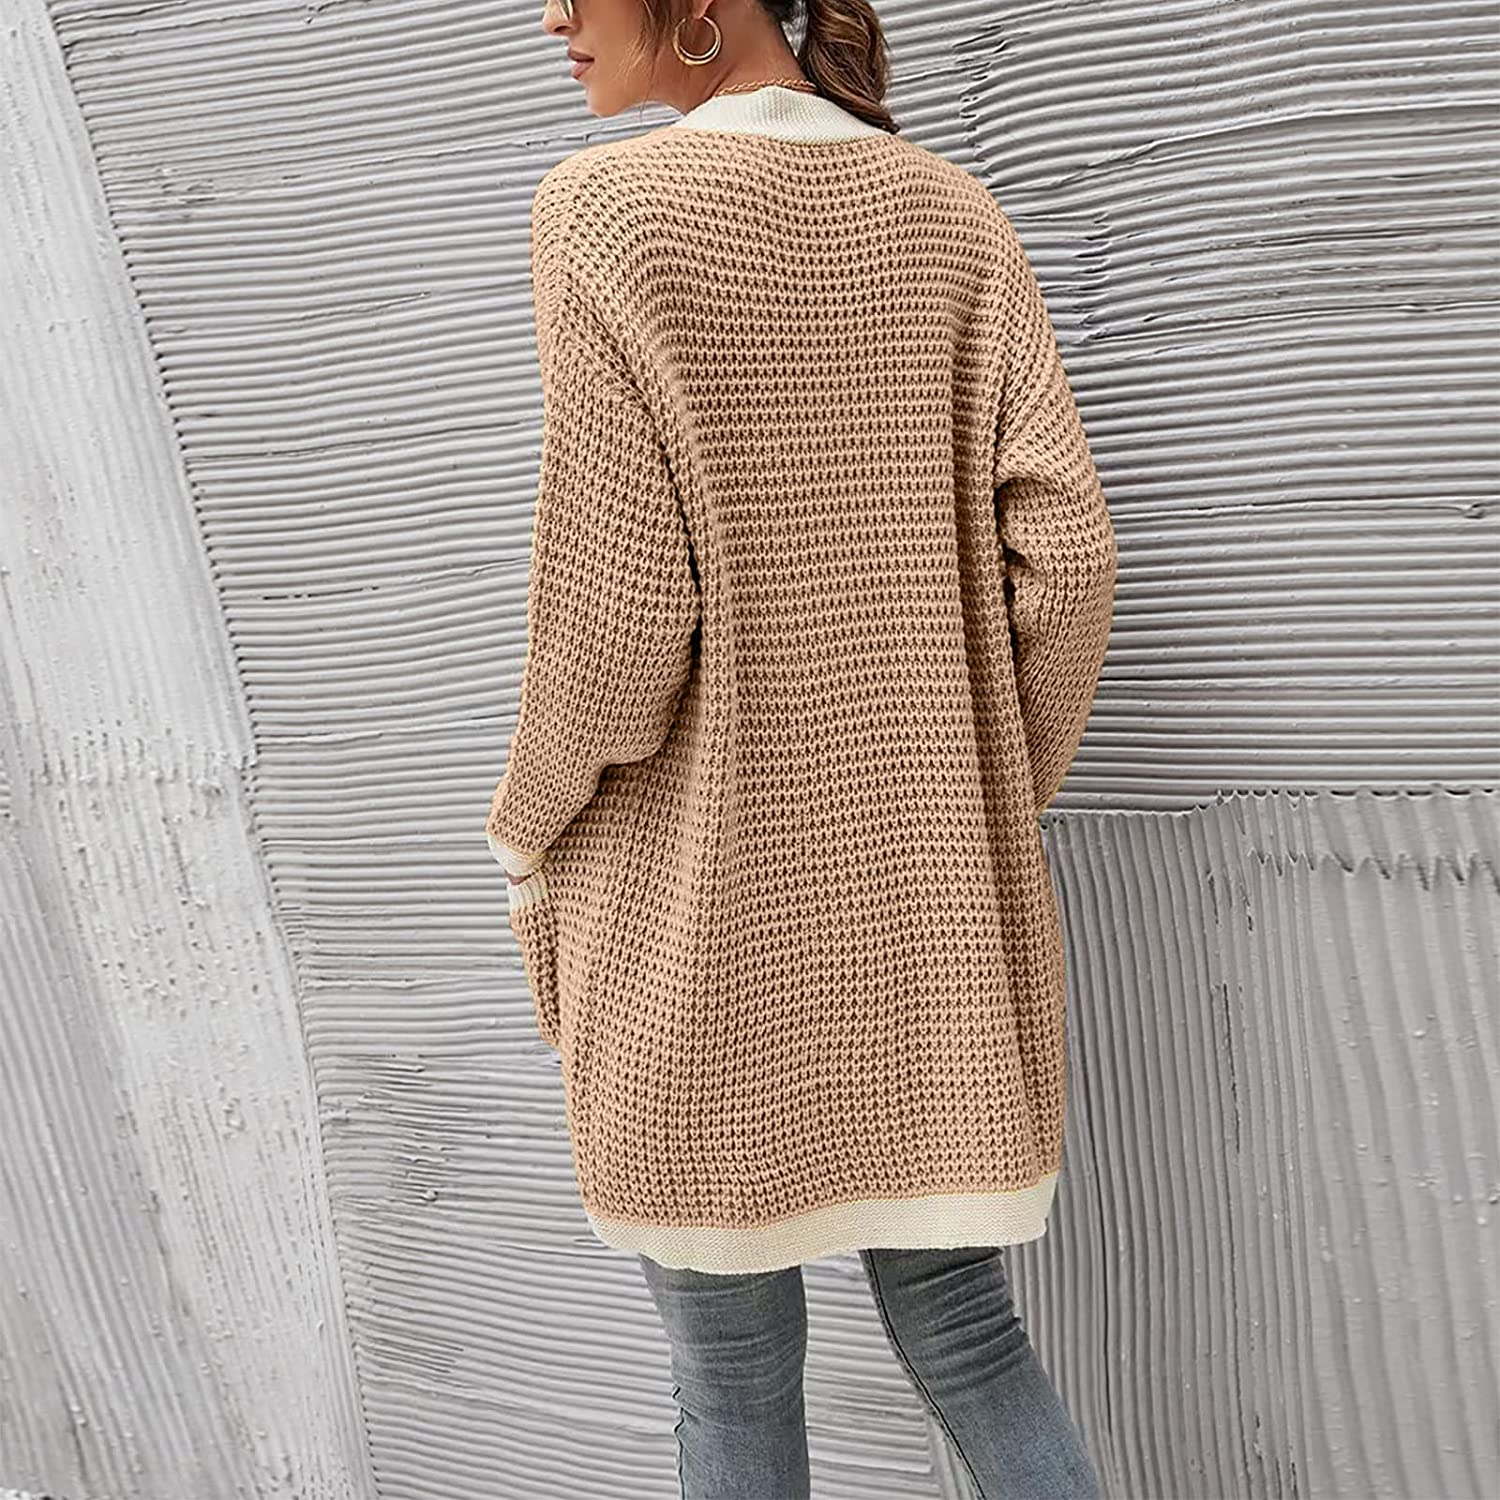 Women's Casual Button Hoodies Tunic Loose Plus Size Solid Color Sweatshirt Long Hoodie Jacket with Pockets Tops